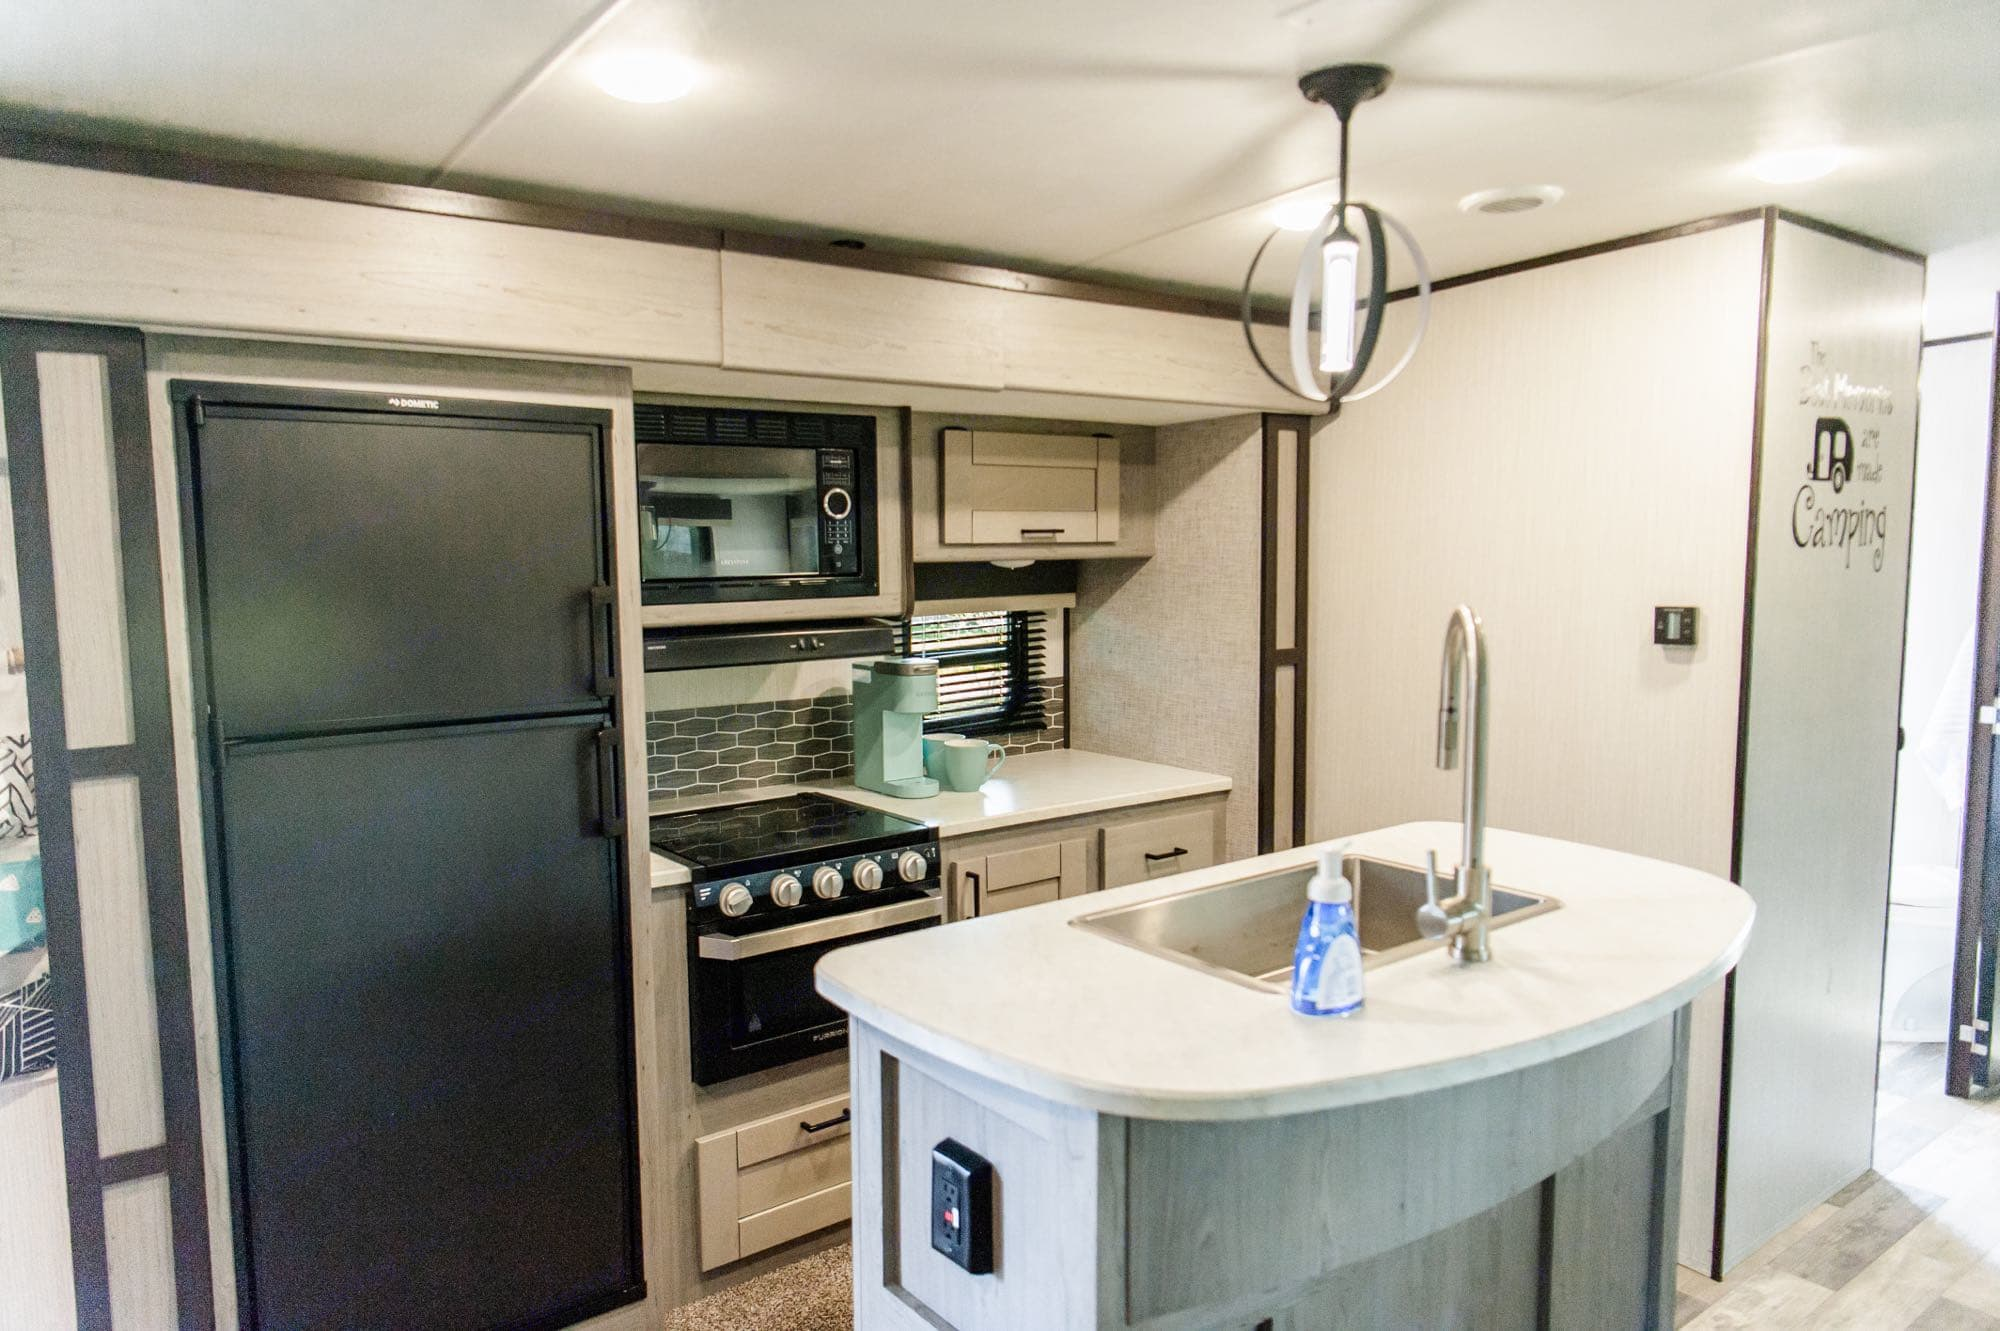 Spacious kitchen fully equipped with plates, utensils, cups, Keurig, pots/pans, baking dishes, measuring cups, mixing bowls and more!. Heartland Mallard 2020